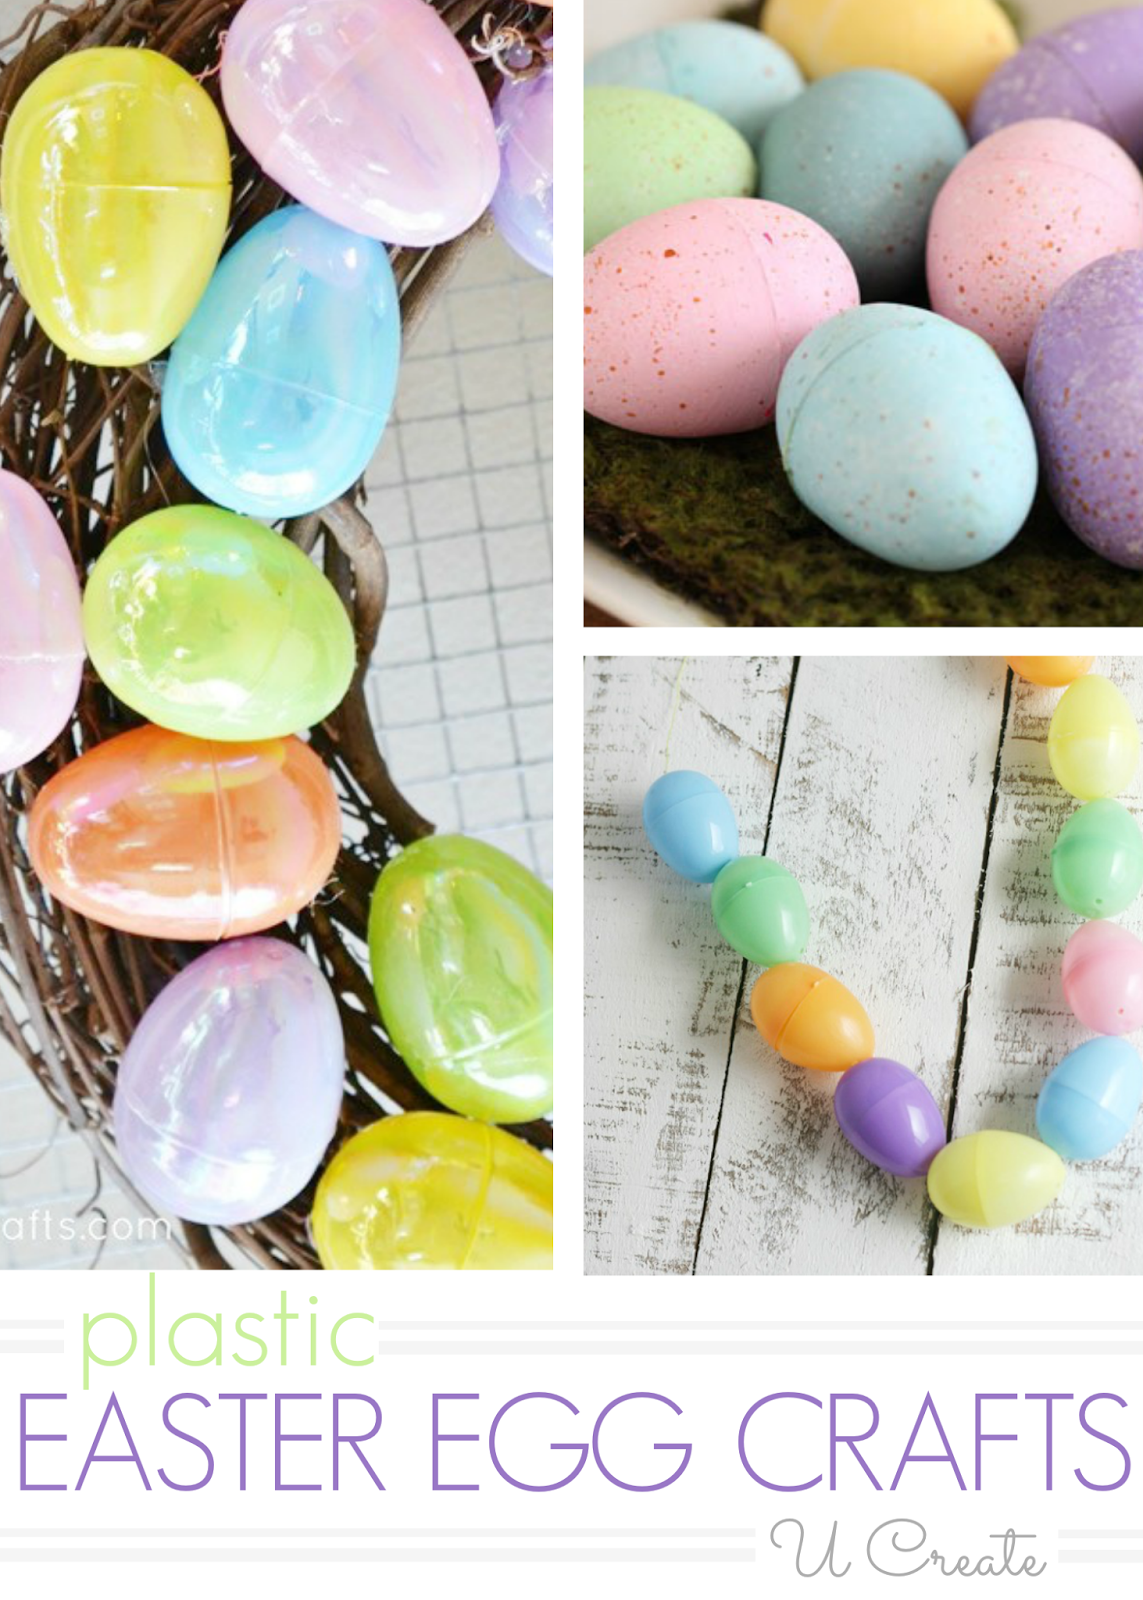 Plastic Easter Egg Craft Tutorials Easter Egg Crafts Plastic Easter Eggs Plastic Easter